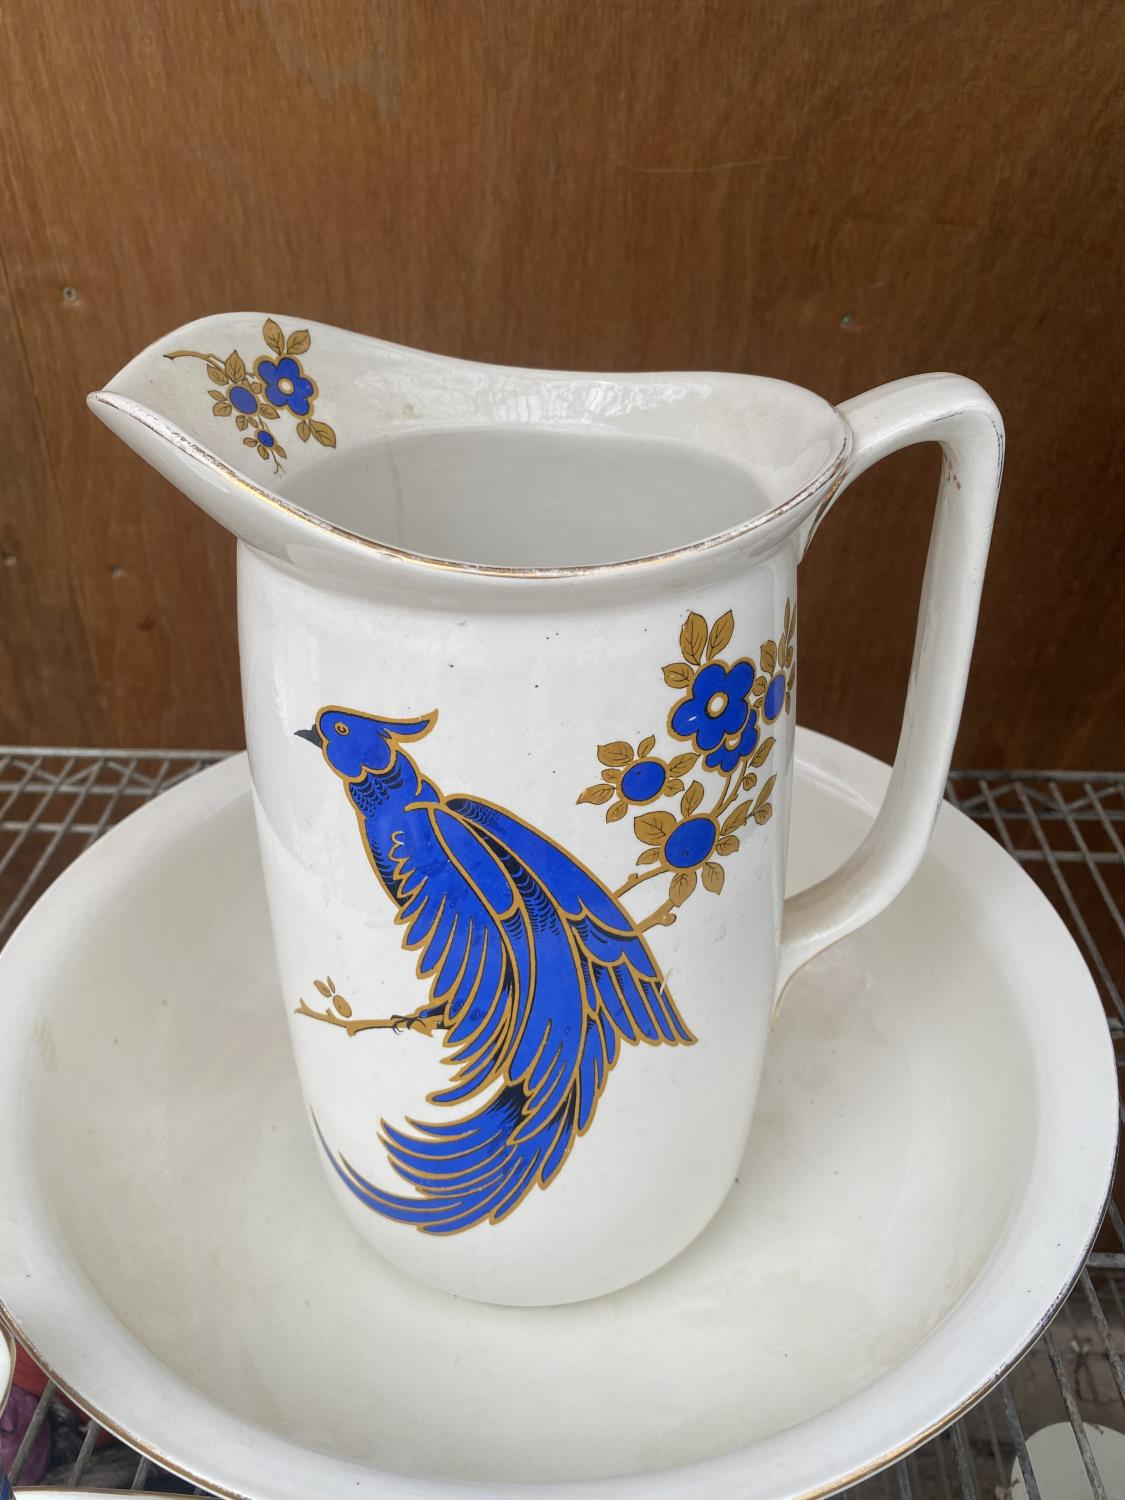 A LARGE WASH JUG AND BOWL AND A FURTHER DRESSING TABLE SET WITH BIRD DESIGN - Image 4 of 5